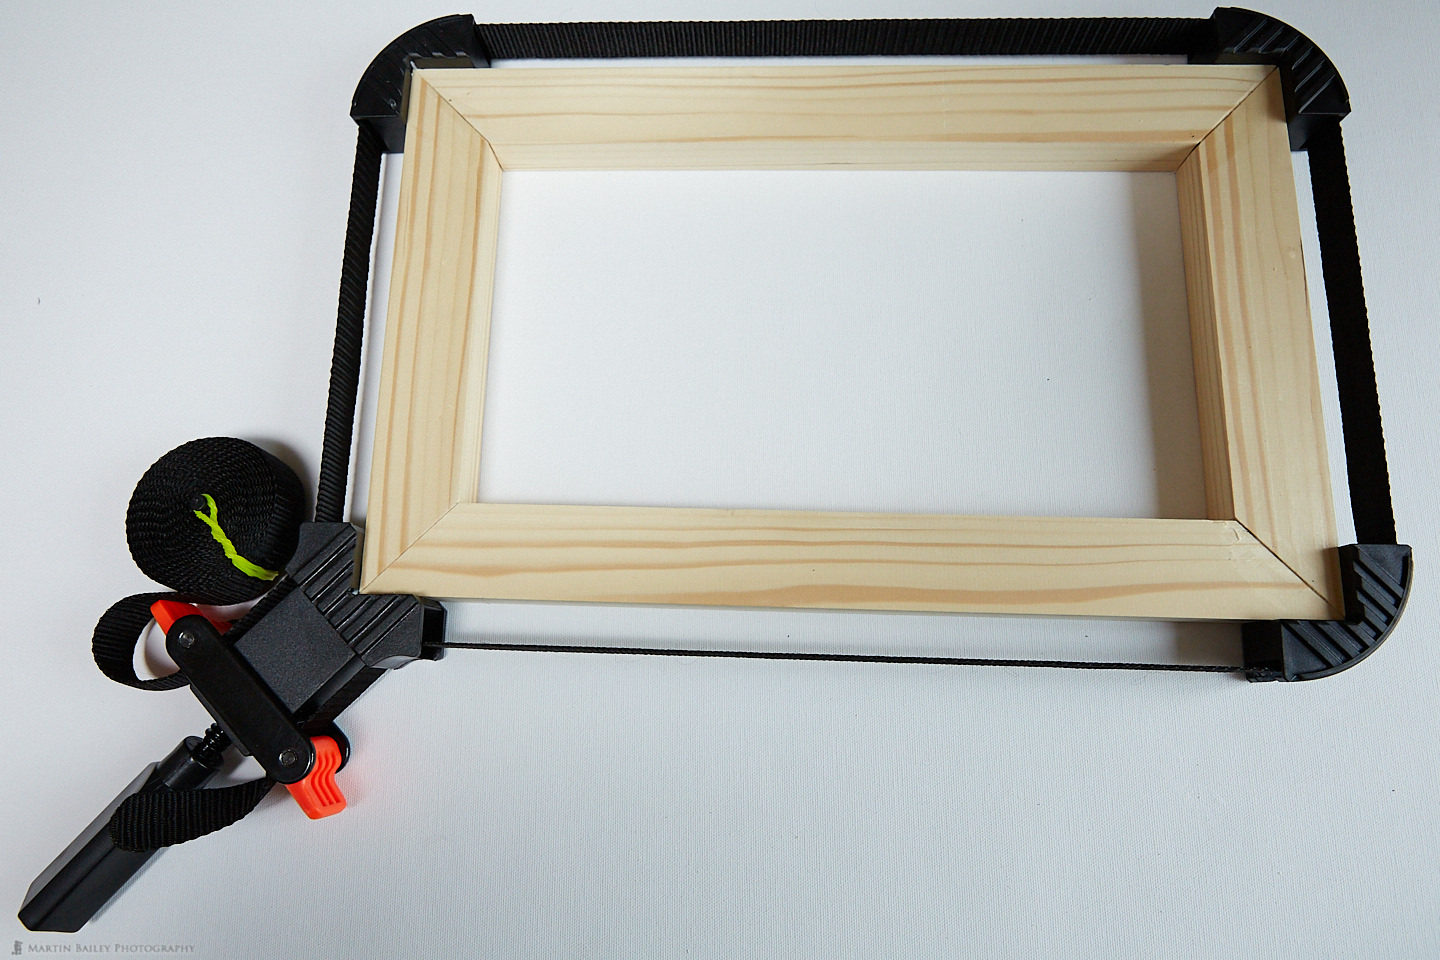 Clamping Frame to Glue